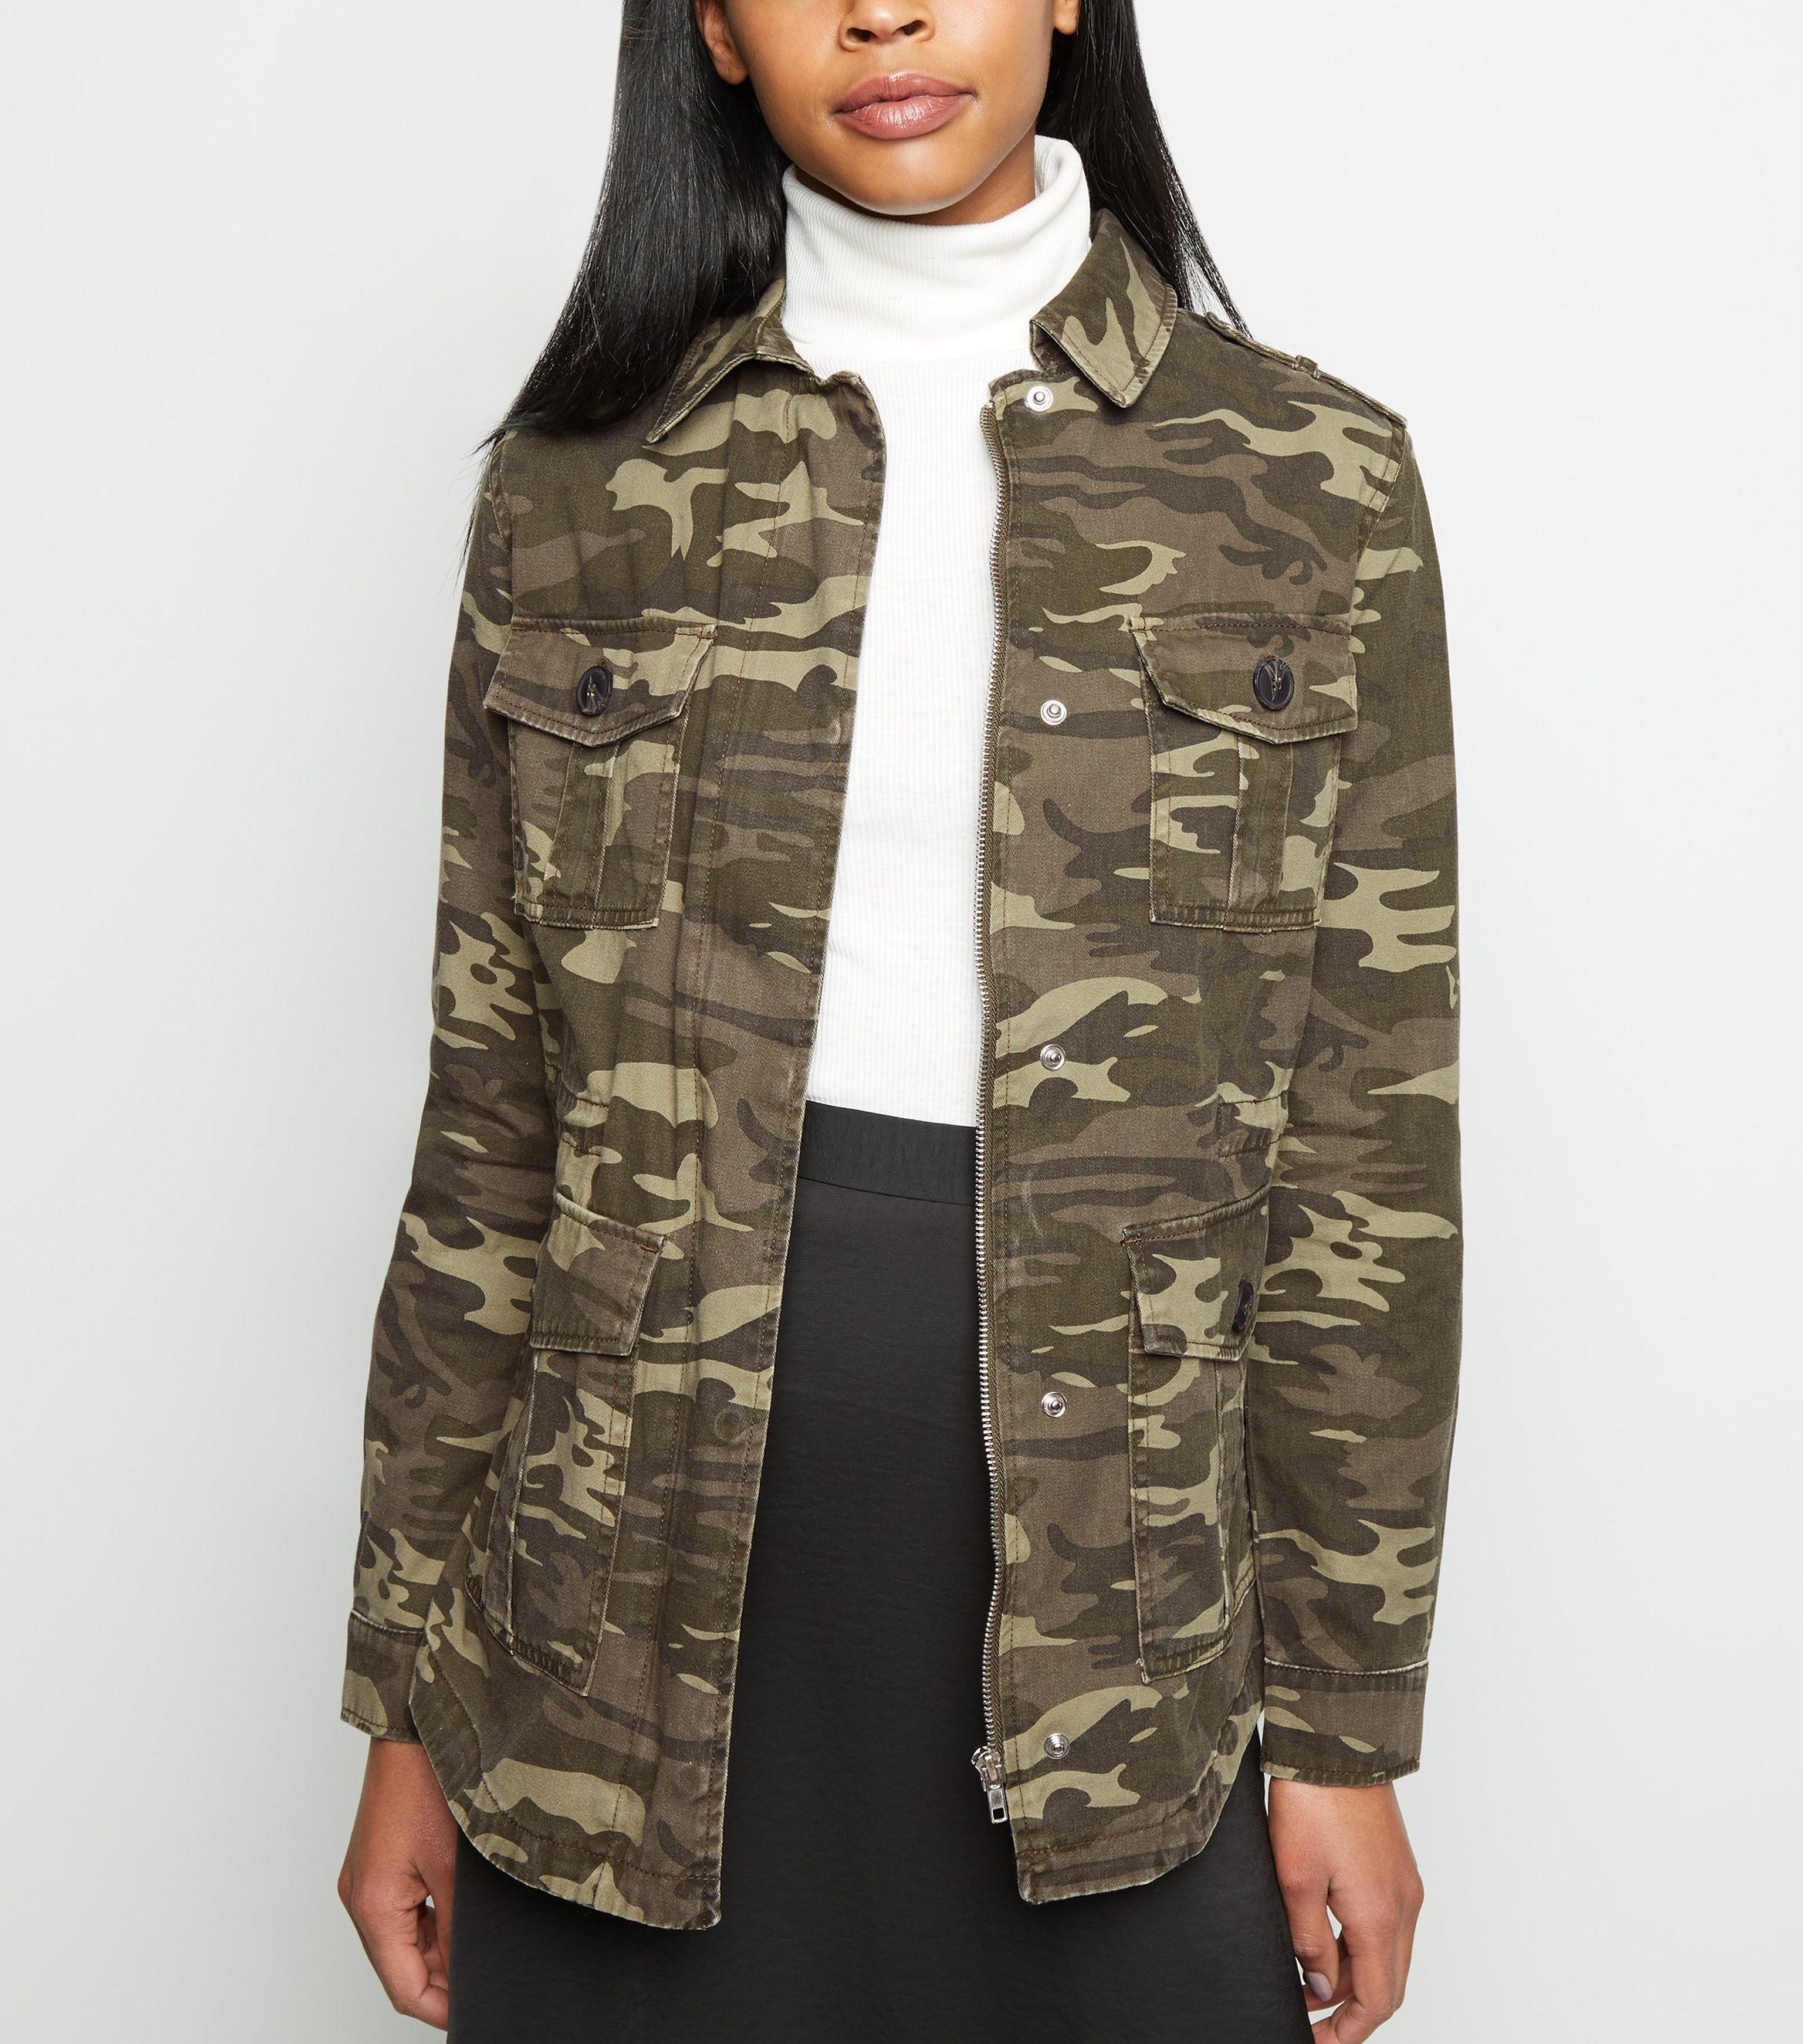 2cd93e15fd521 New Look Green Camo Print Utility Jacket in Green - Lyst